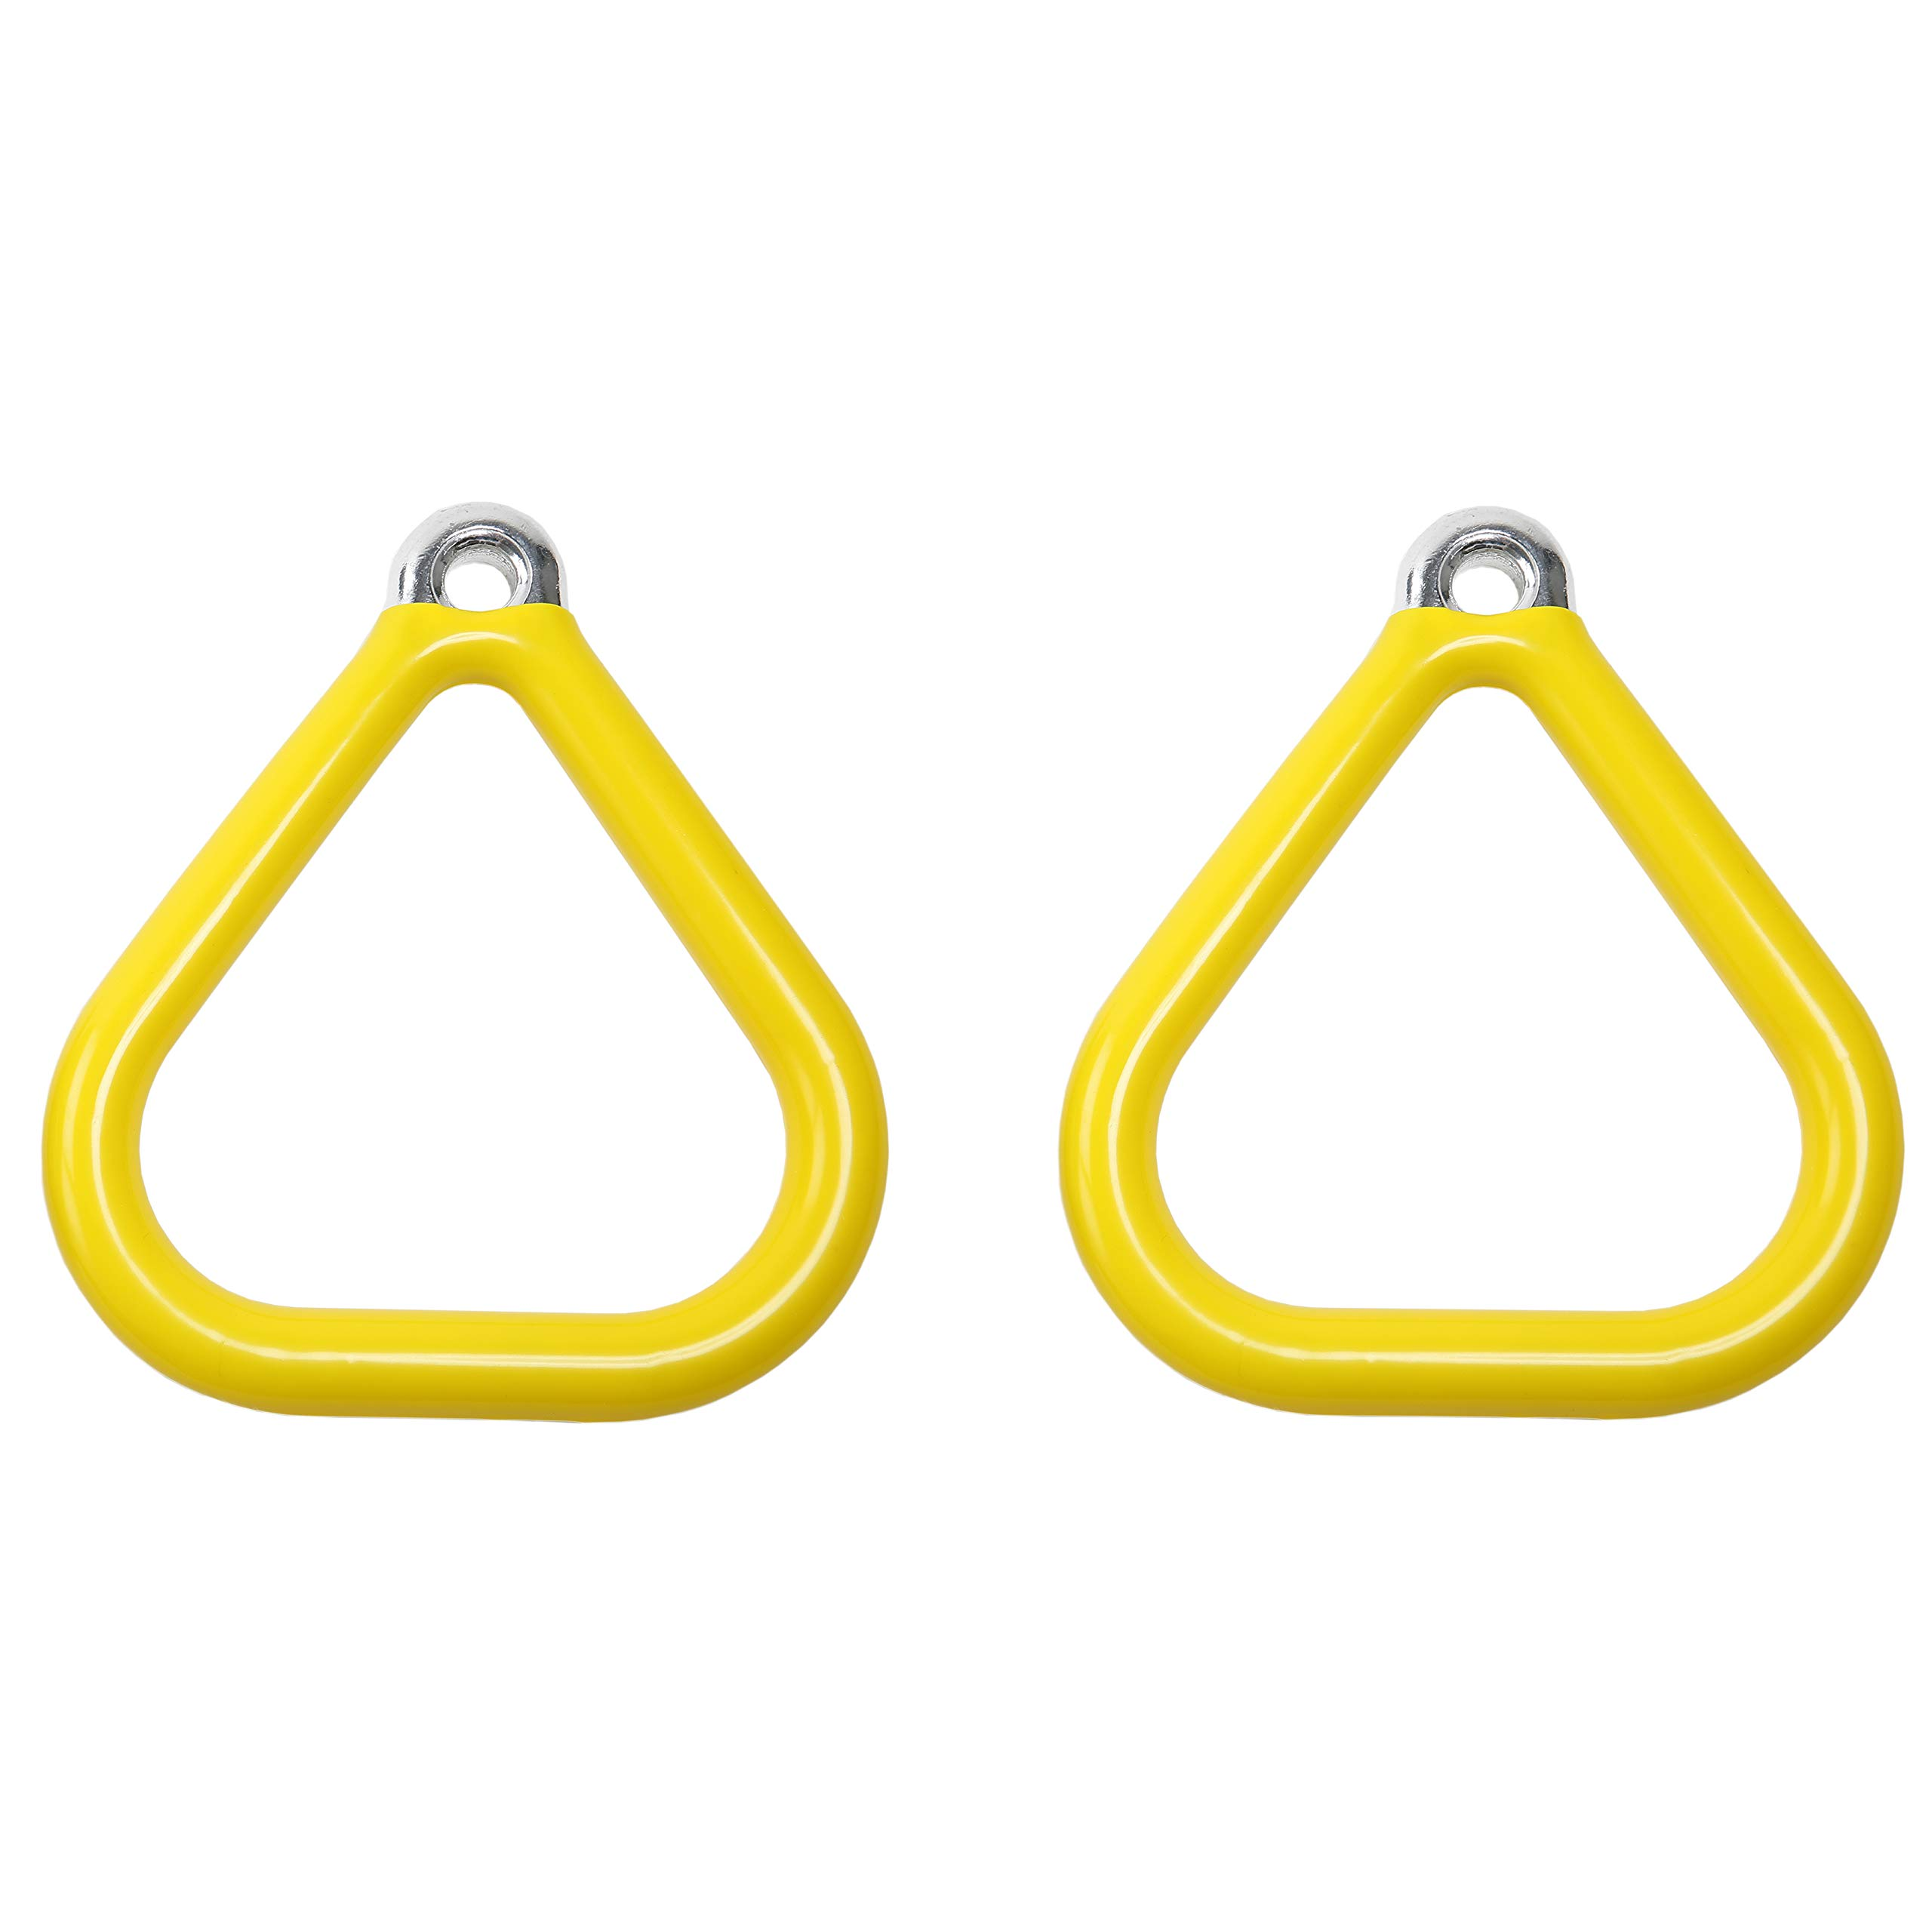 Gorilla Playsets Accessories Trapeze Rings in Yellow - Set of 2 by Gorilla Playsets